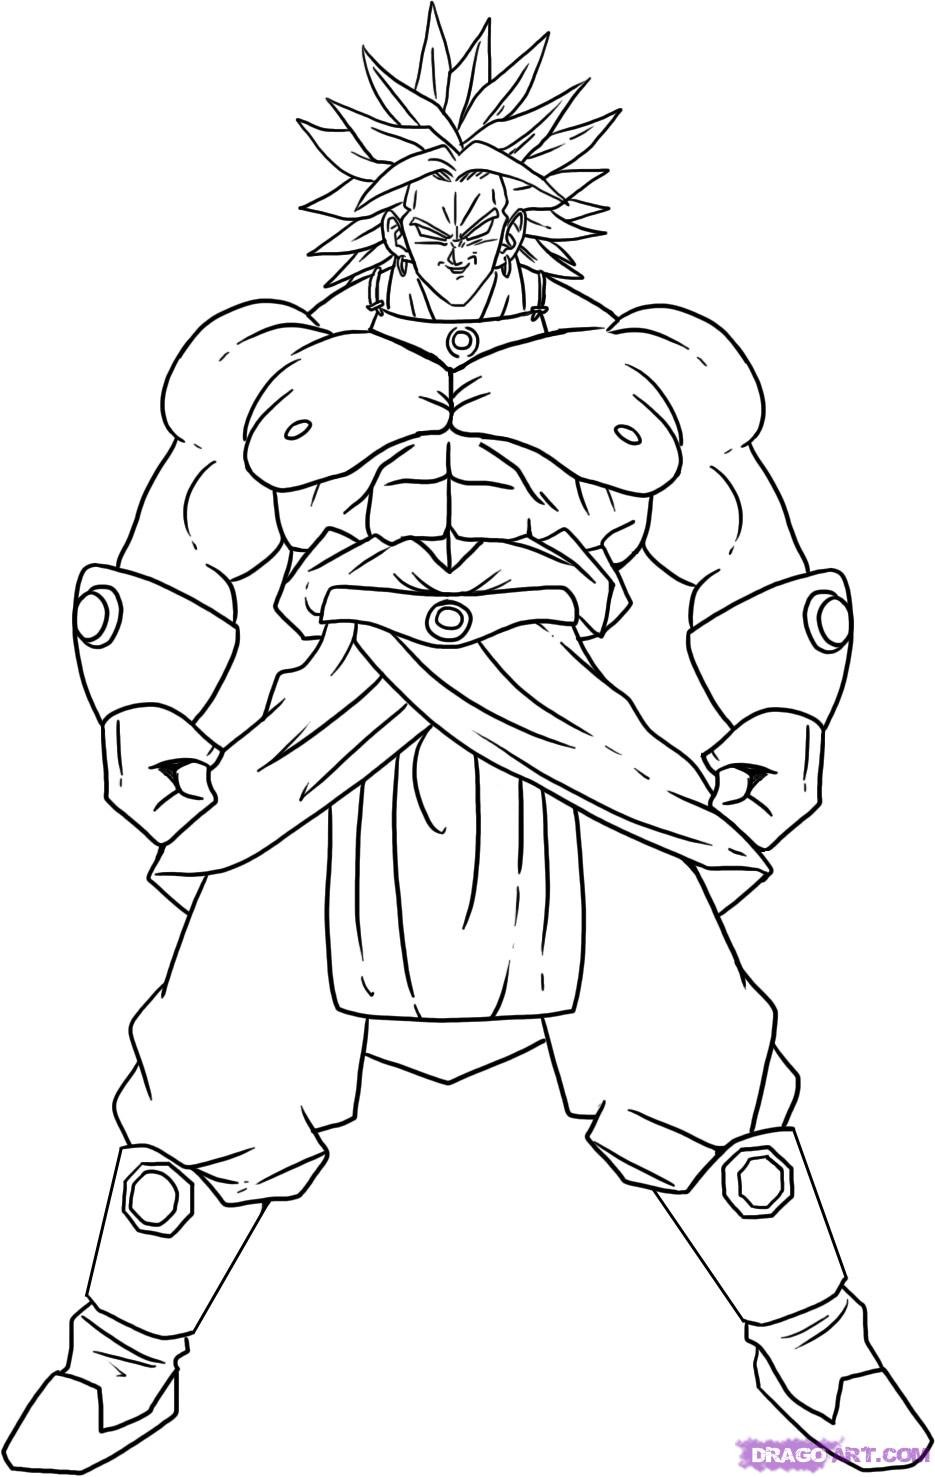 dragon ball z coloring pages printable | TimyKids